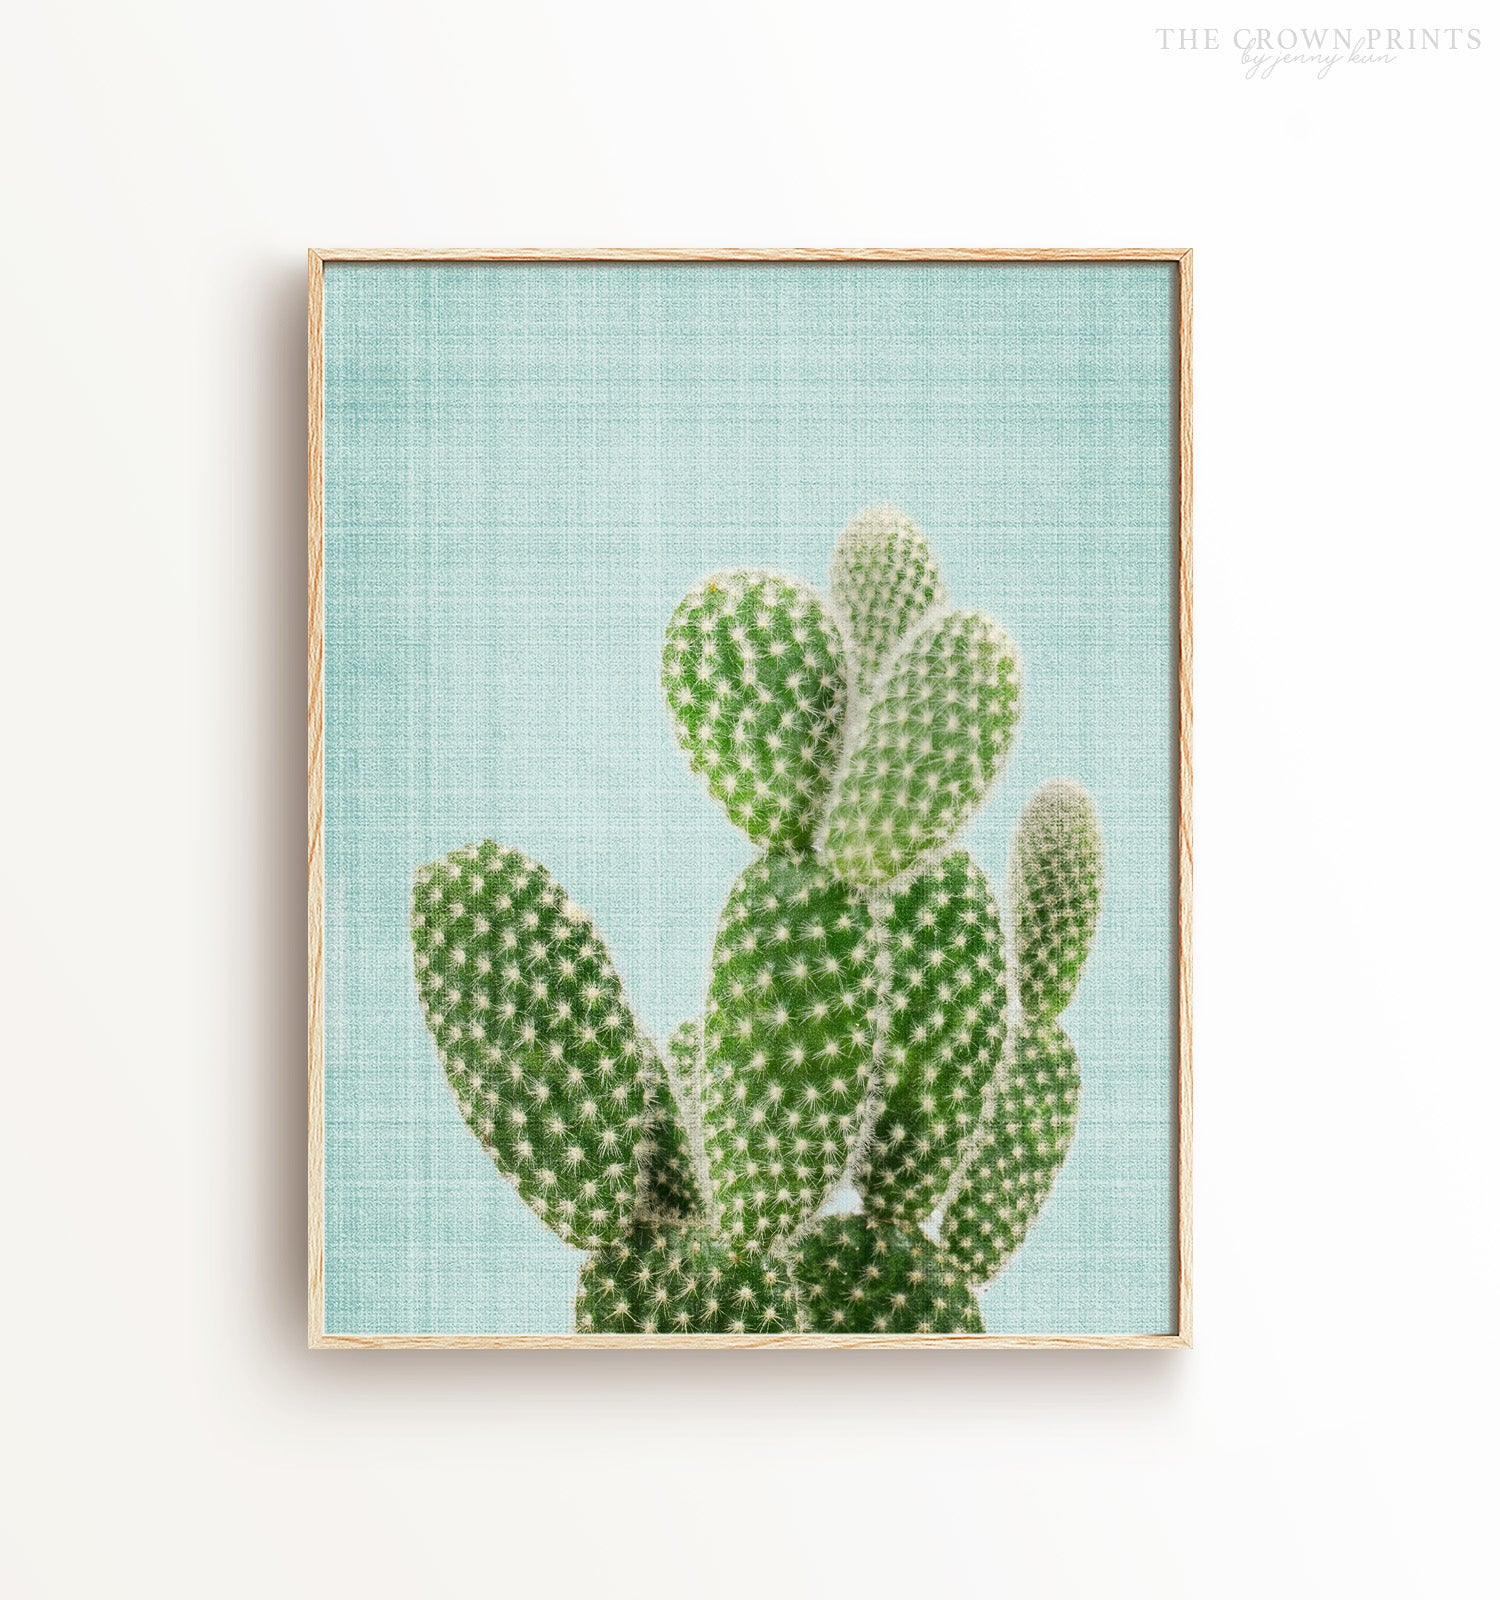 photograph relating to Cactus Printable called Cactus No. 2 Printable Artwork